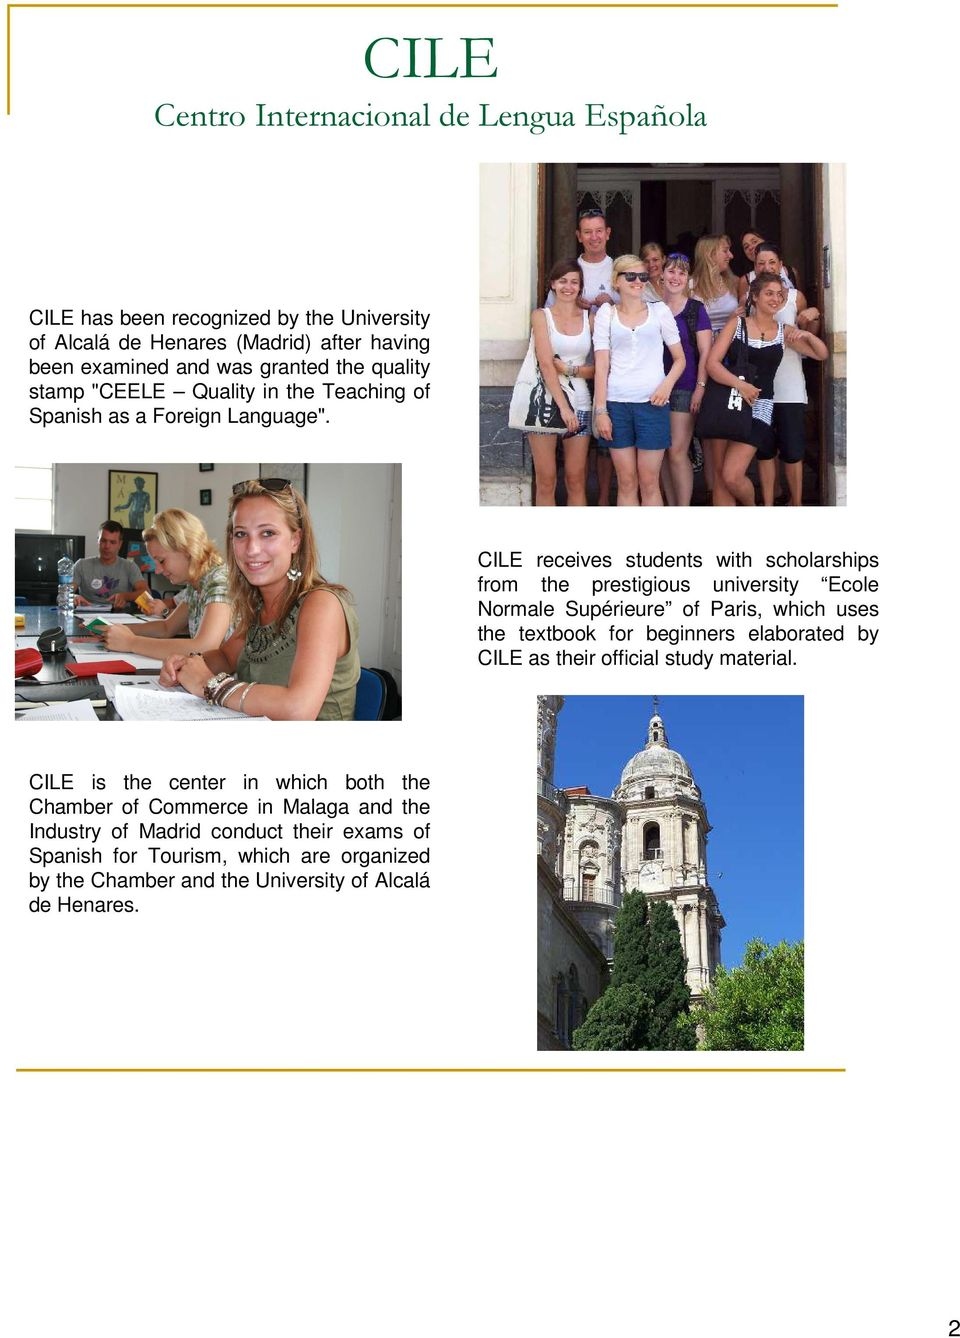 CILE receives students with scholarships from the prestigious university Ecole Normale Supérieure of Paris, which uses the textbook for beginners elaborated by CILE